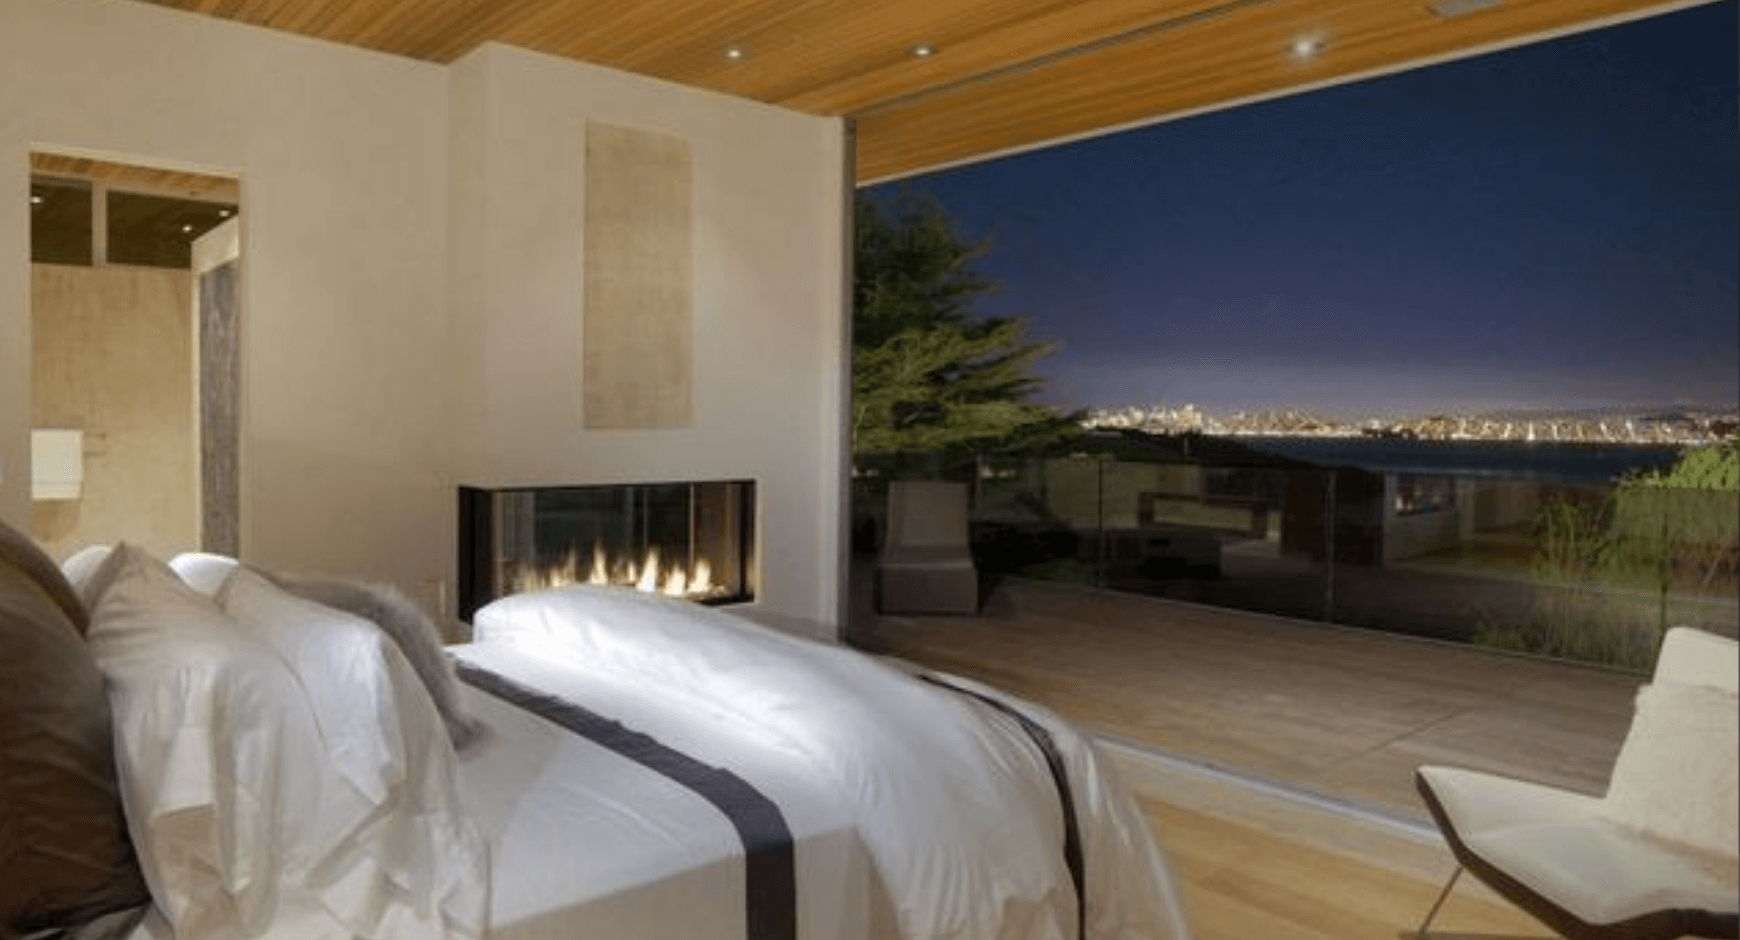 Hotel bedroom ideas that have large windows for sweeping views